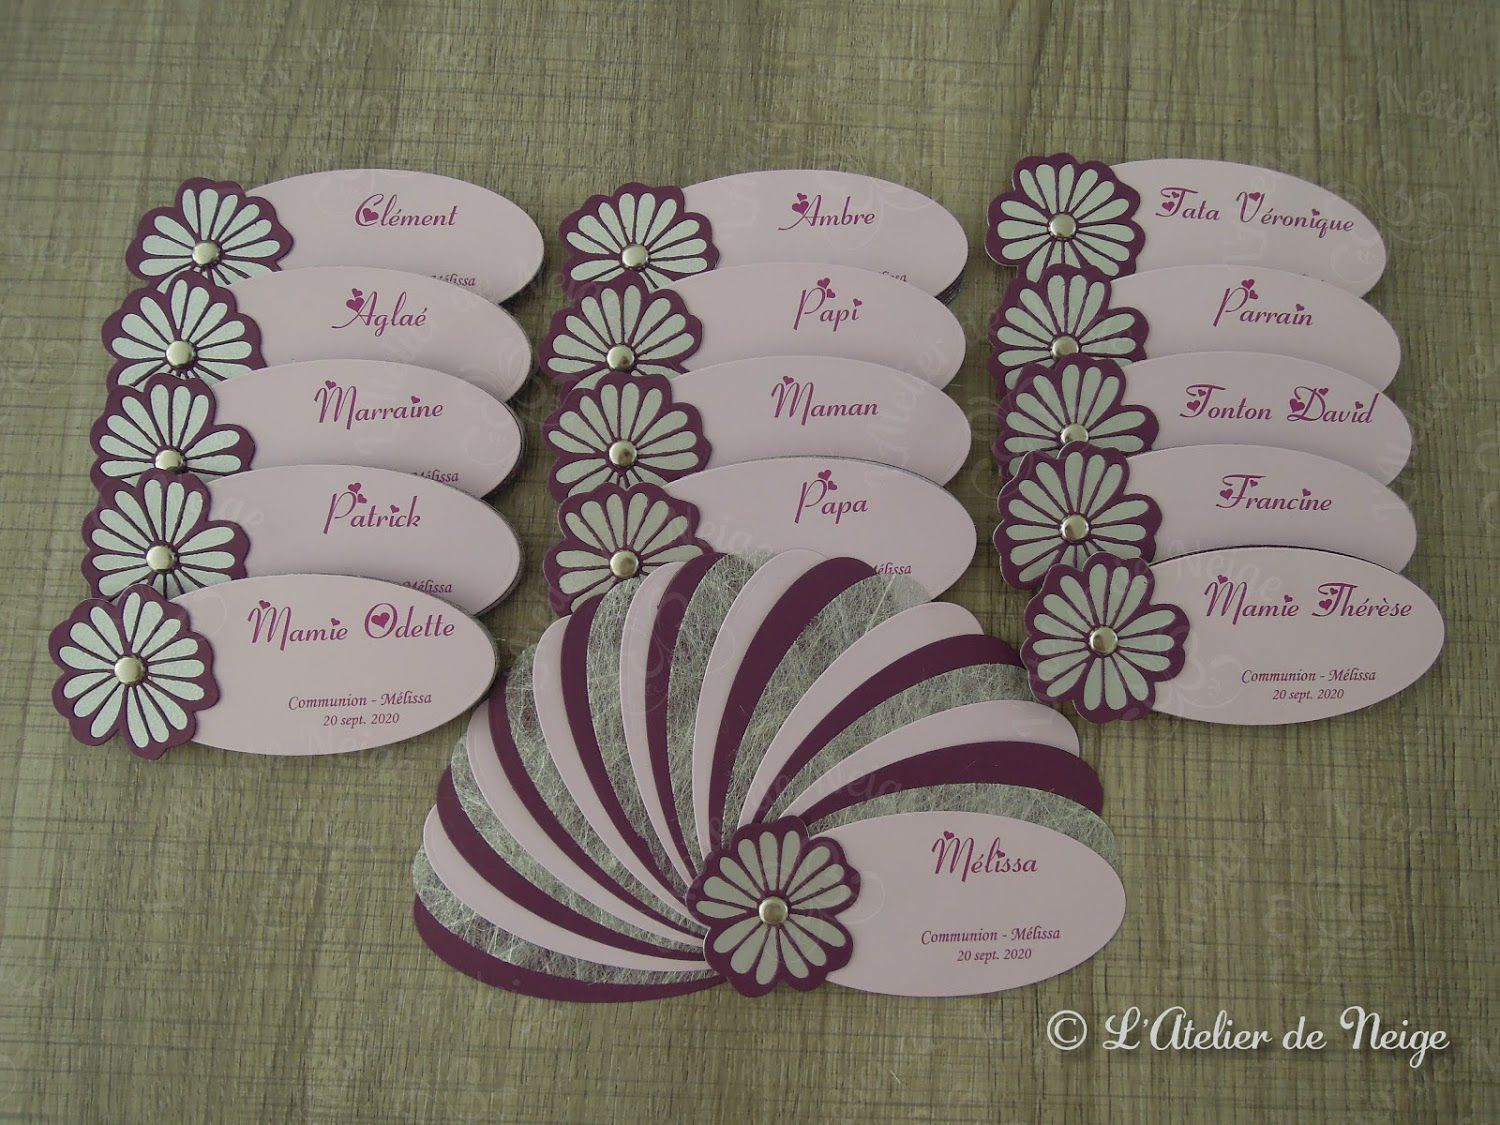 603 - Menus Communion Mélissa 20 sept. 2020